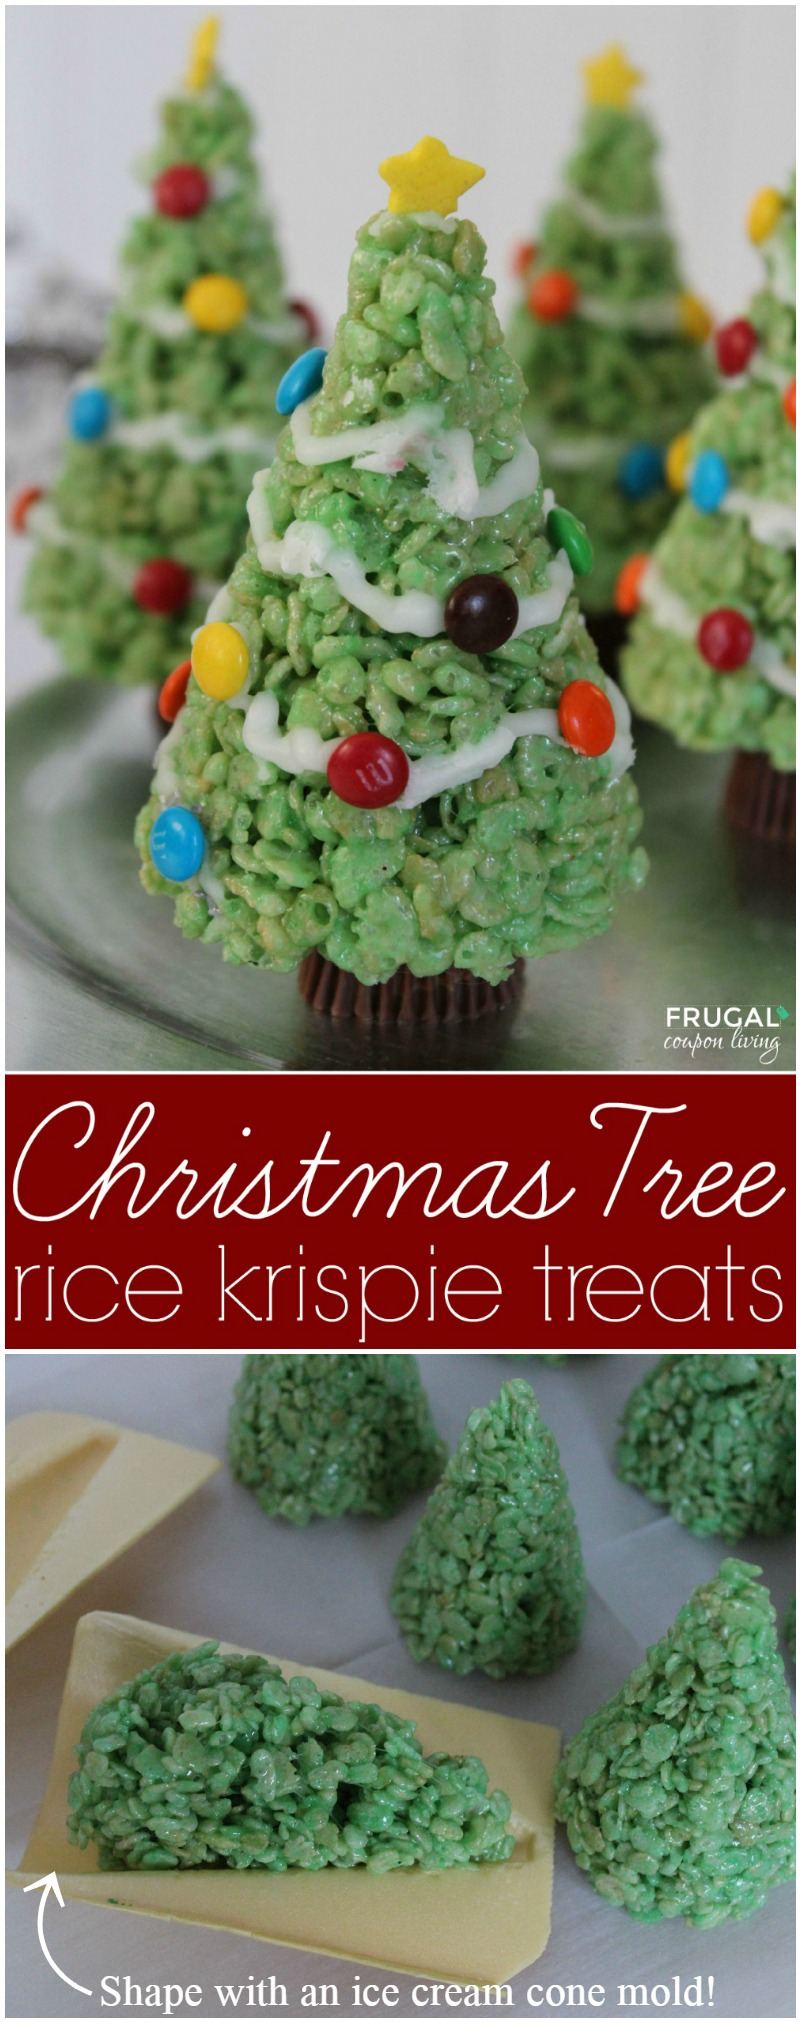 Christmas Tree Rice Krispie Treats Collage on Frugal Coupon Living